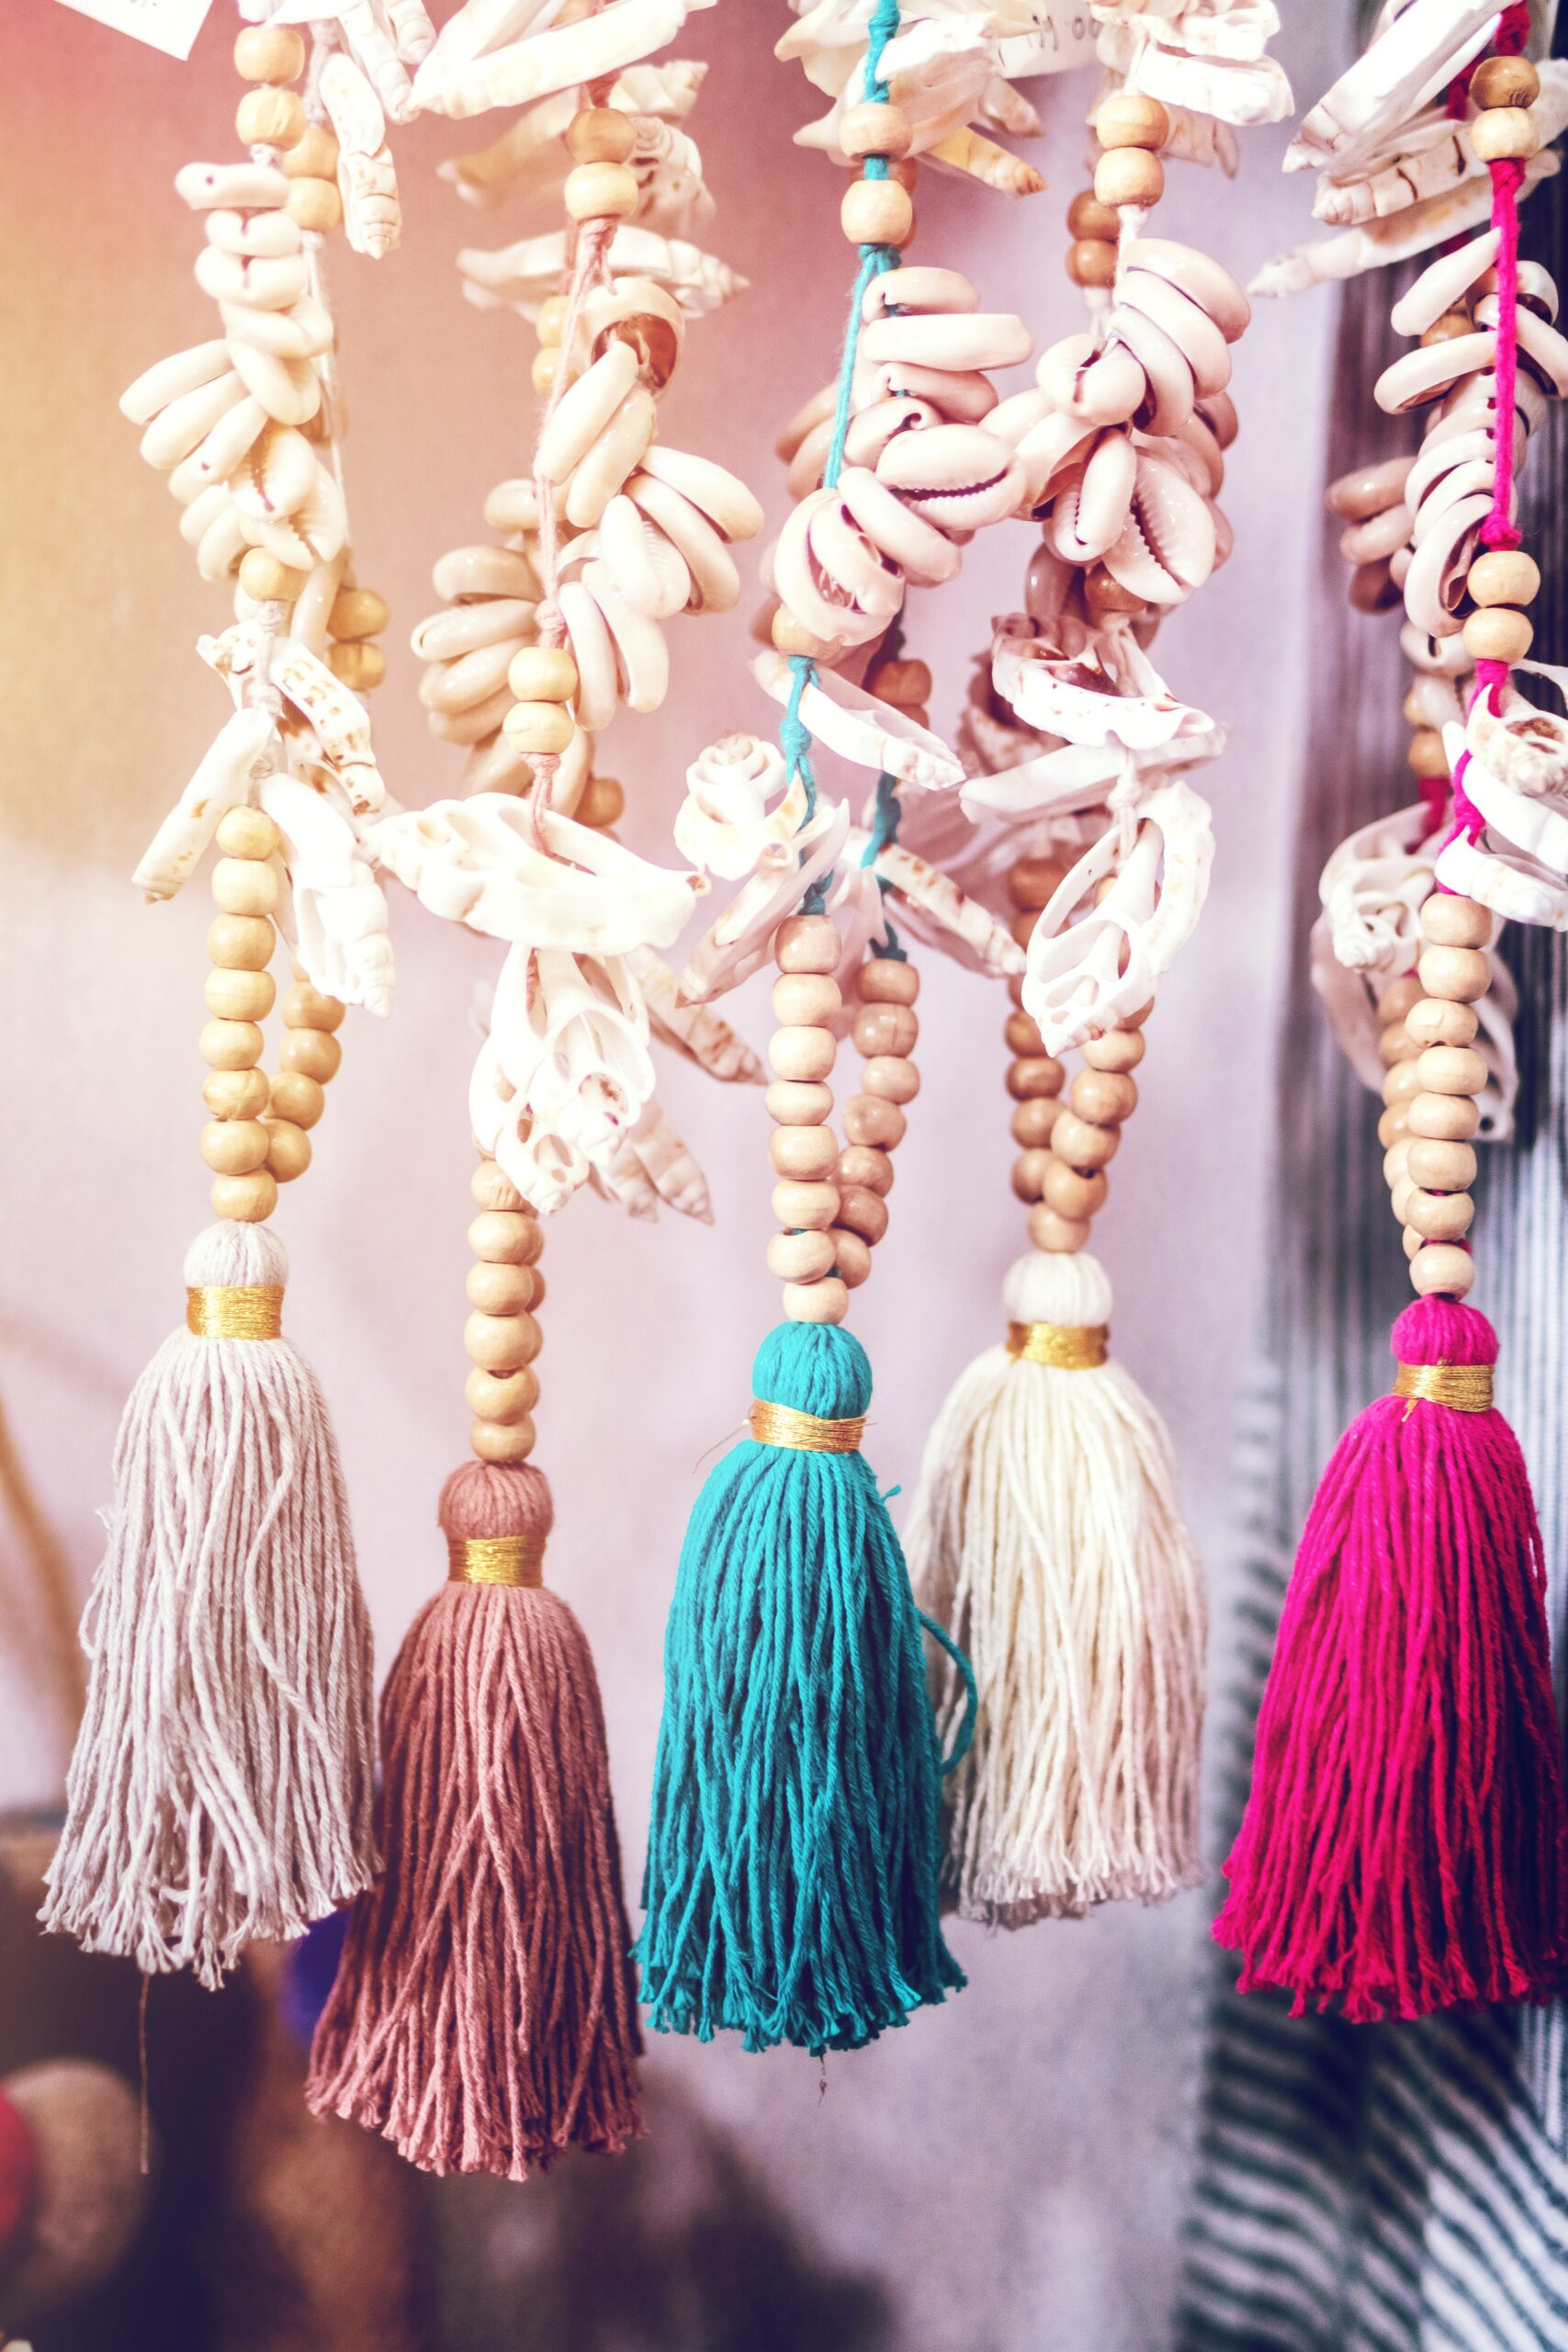 How to Wash Fringes and Tassels